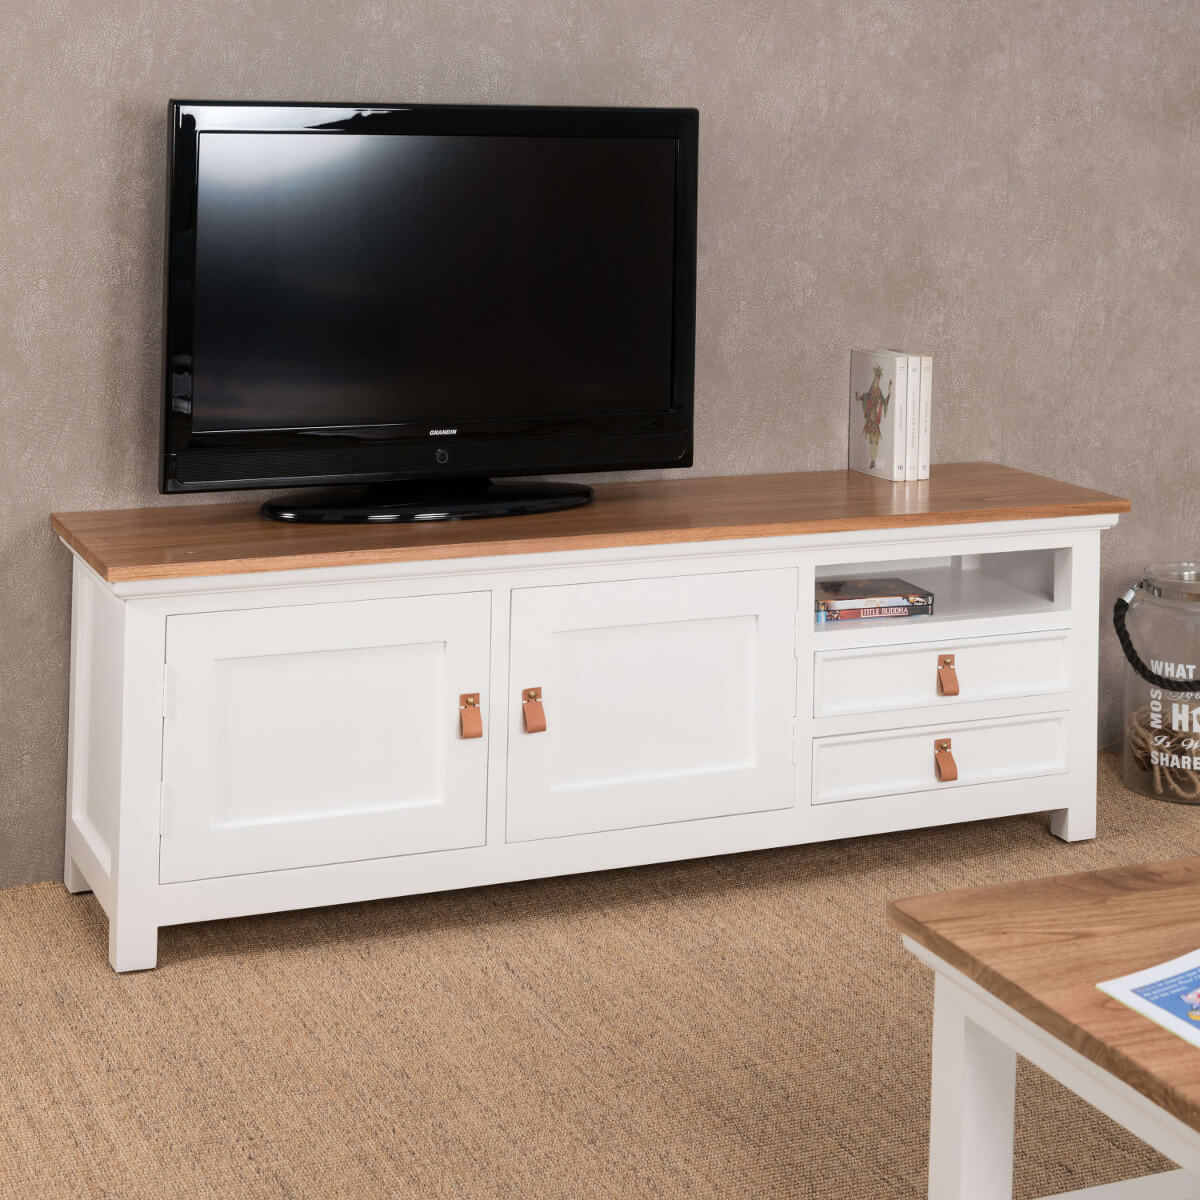 Meuble tv salon bois massif teck et pin chic rectangle for Meuble salon bois blanc